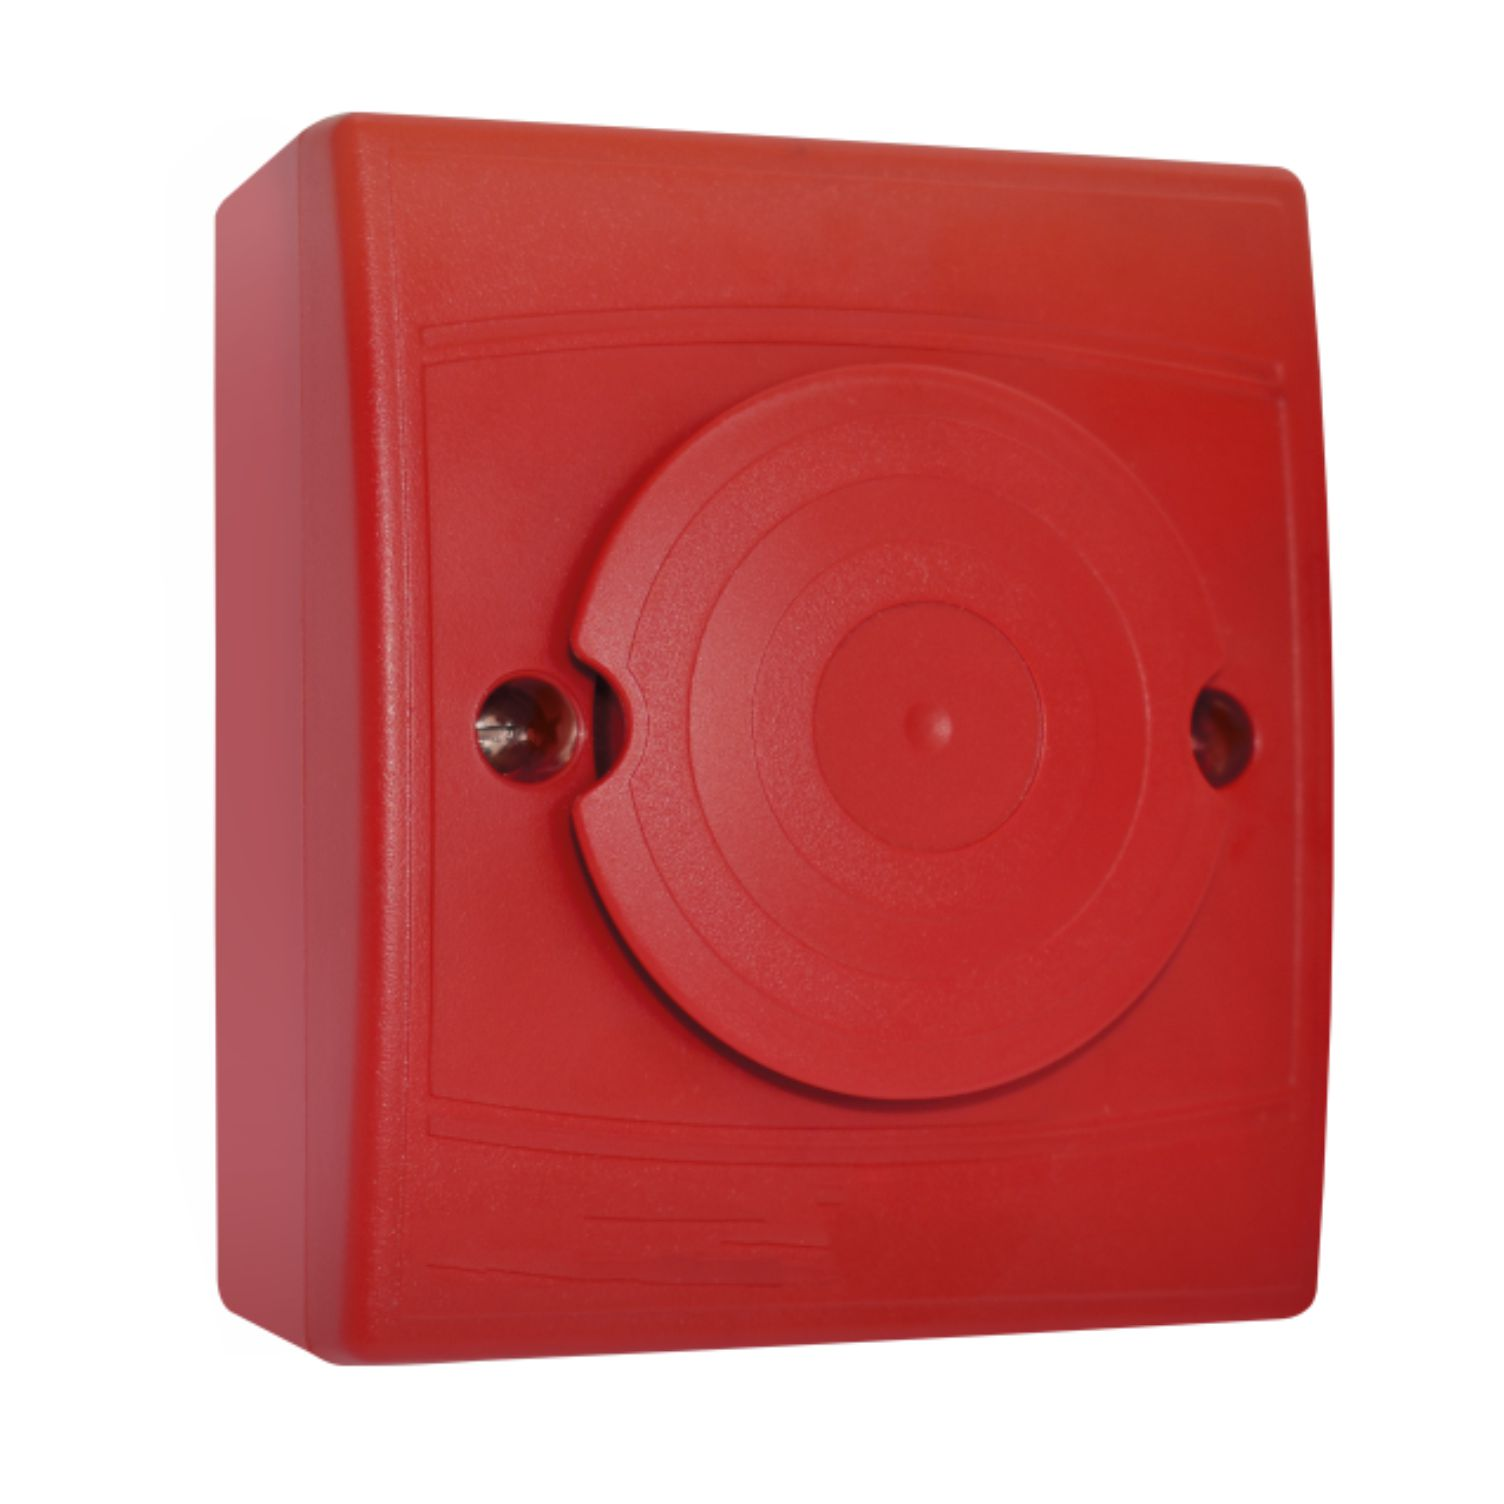 Identifire Tritone Sounder Surface Mount, Red